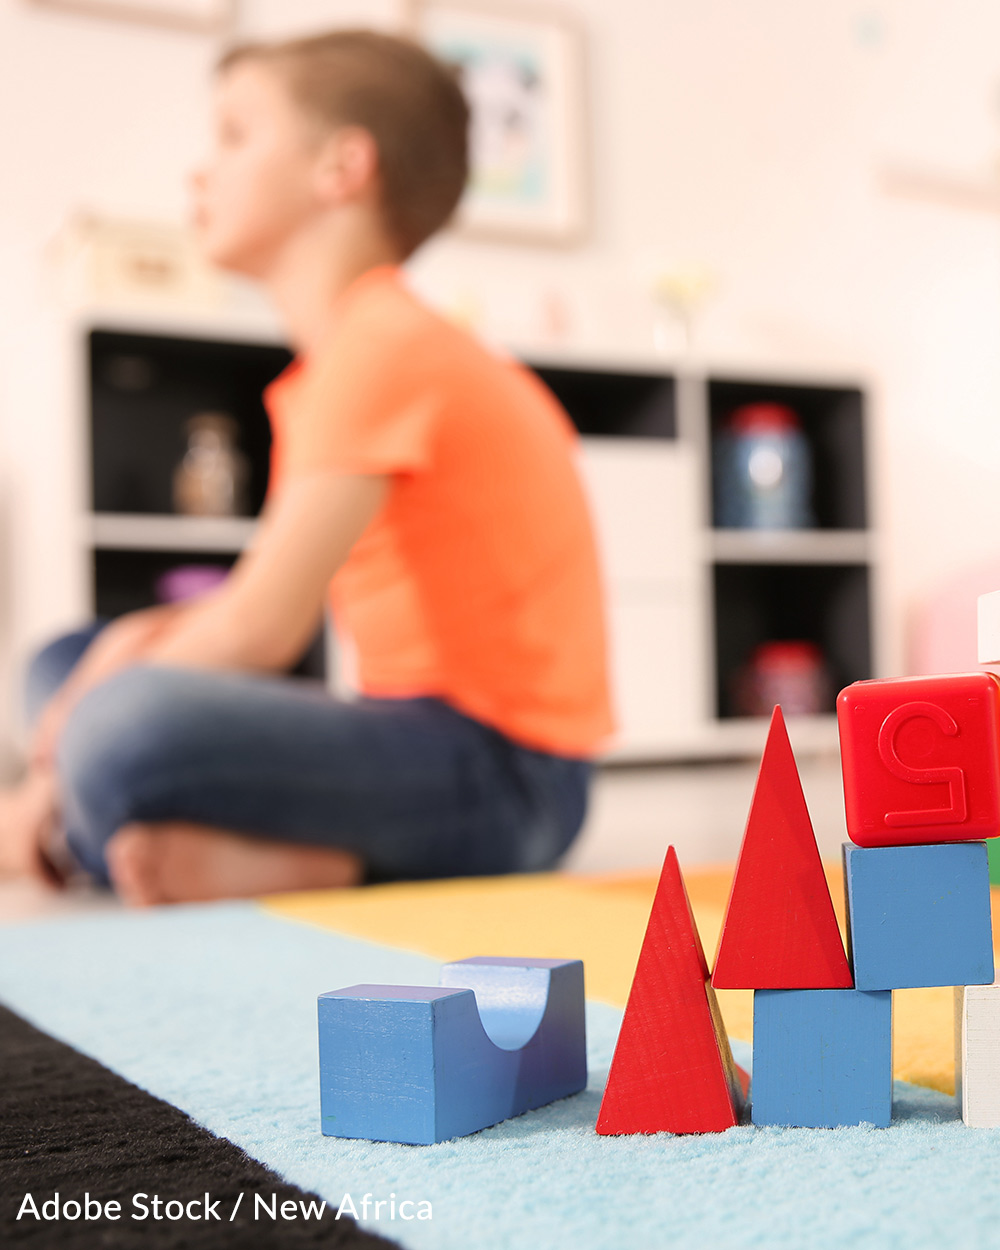 Many studies suggest it's time to describe autism differently.